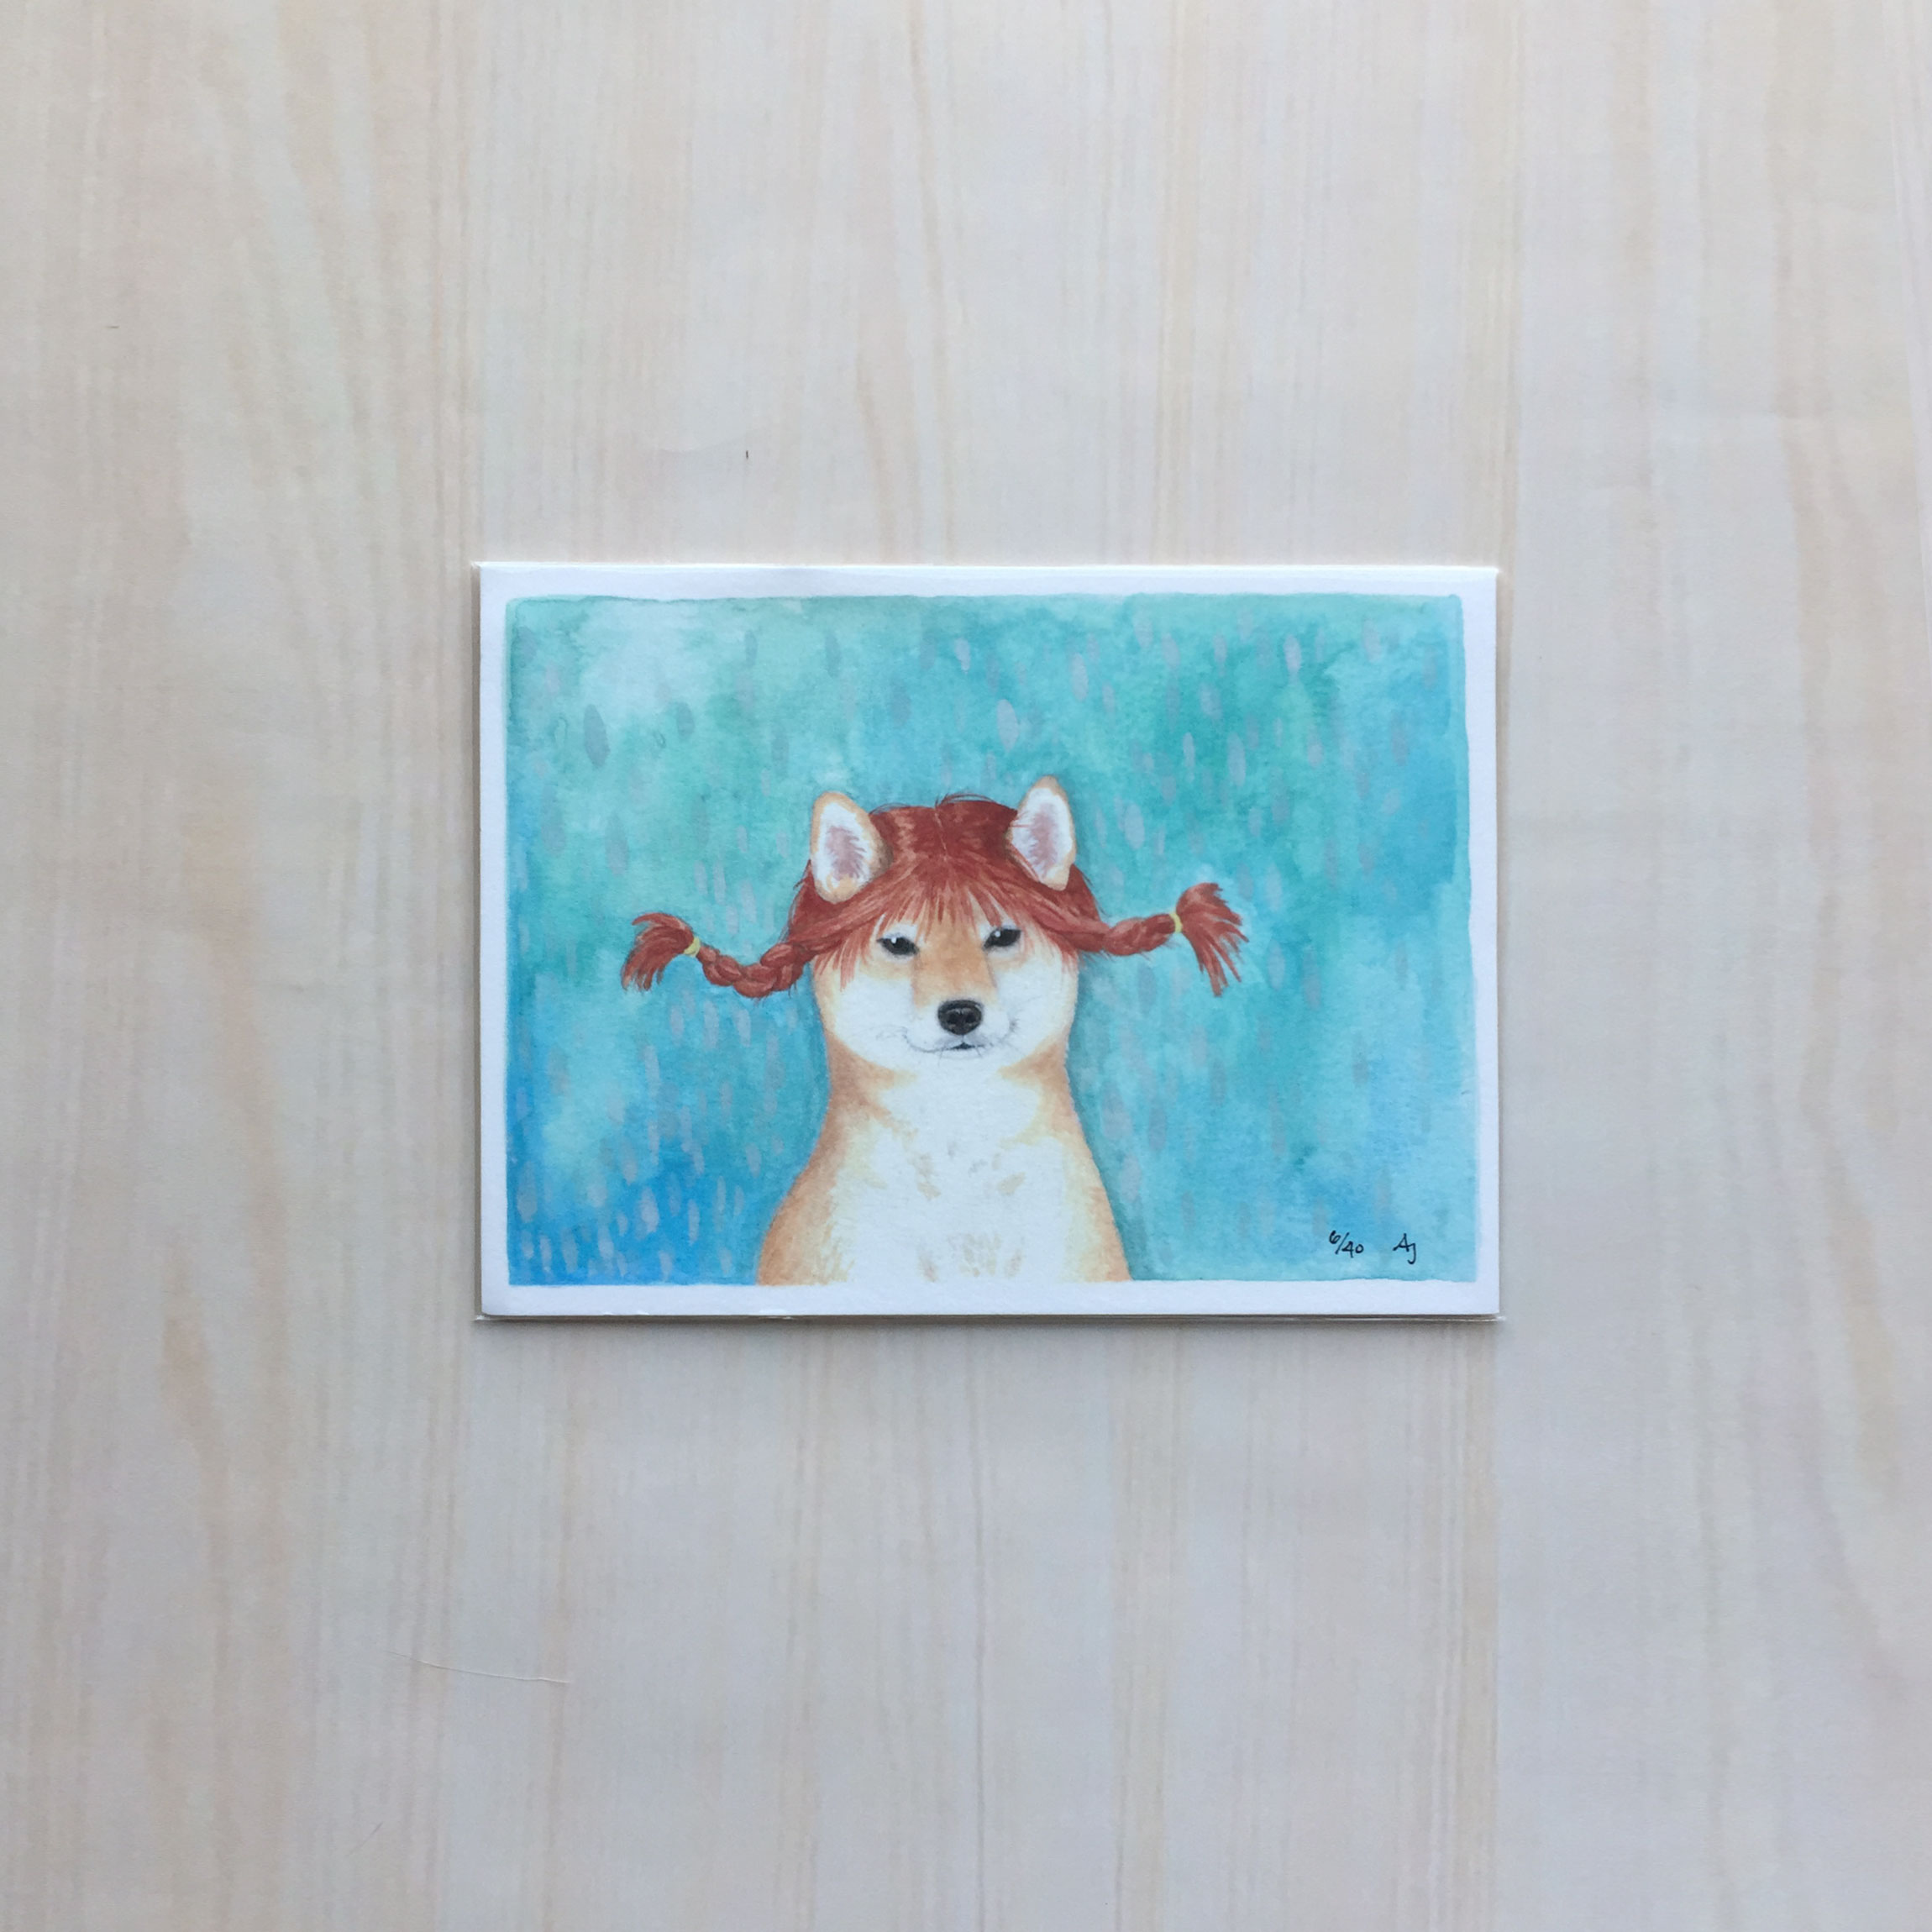 "Puppy Longstocking   Size: 5.5""x7.5"" Printing: digital Paper: velvet Original Medium: gouache Editions: limited to 40"